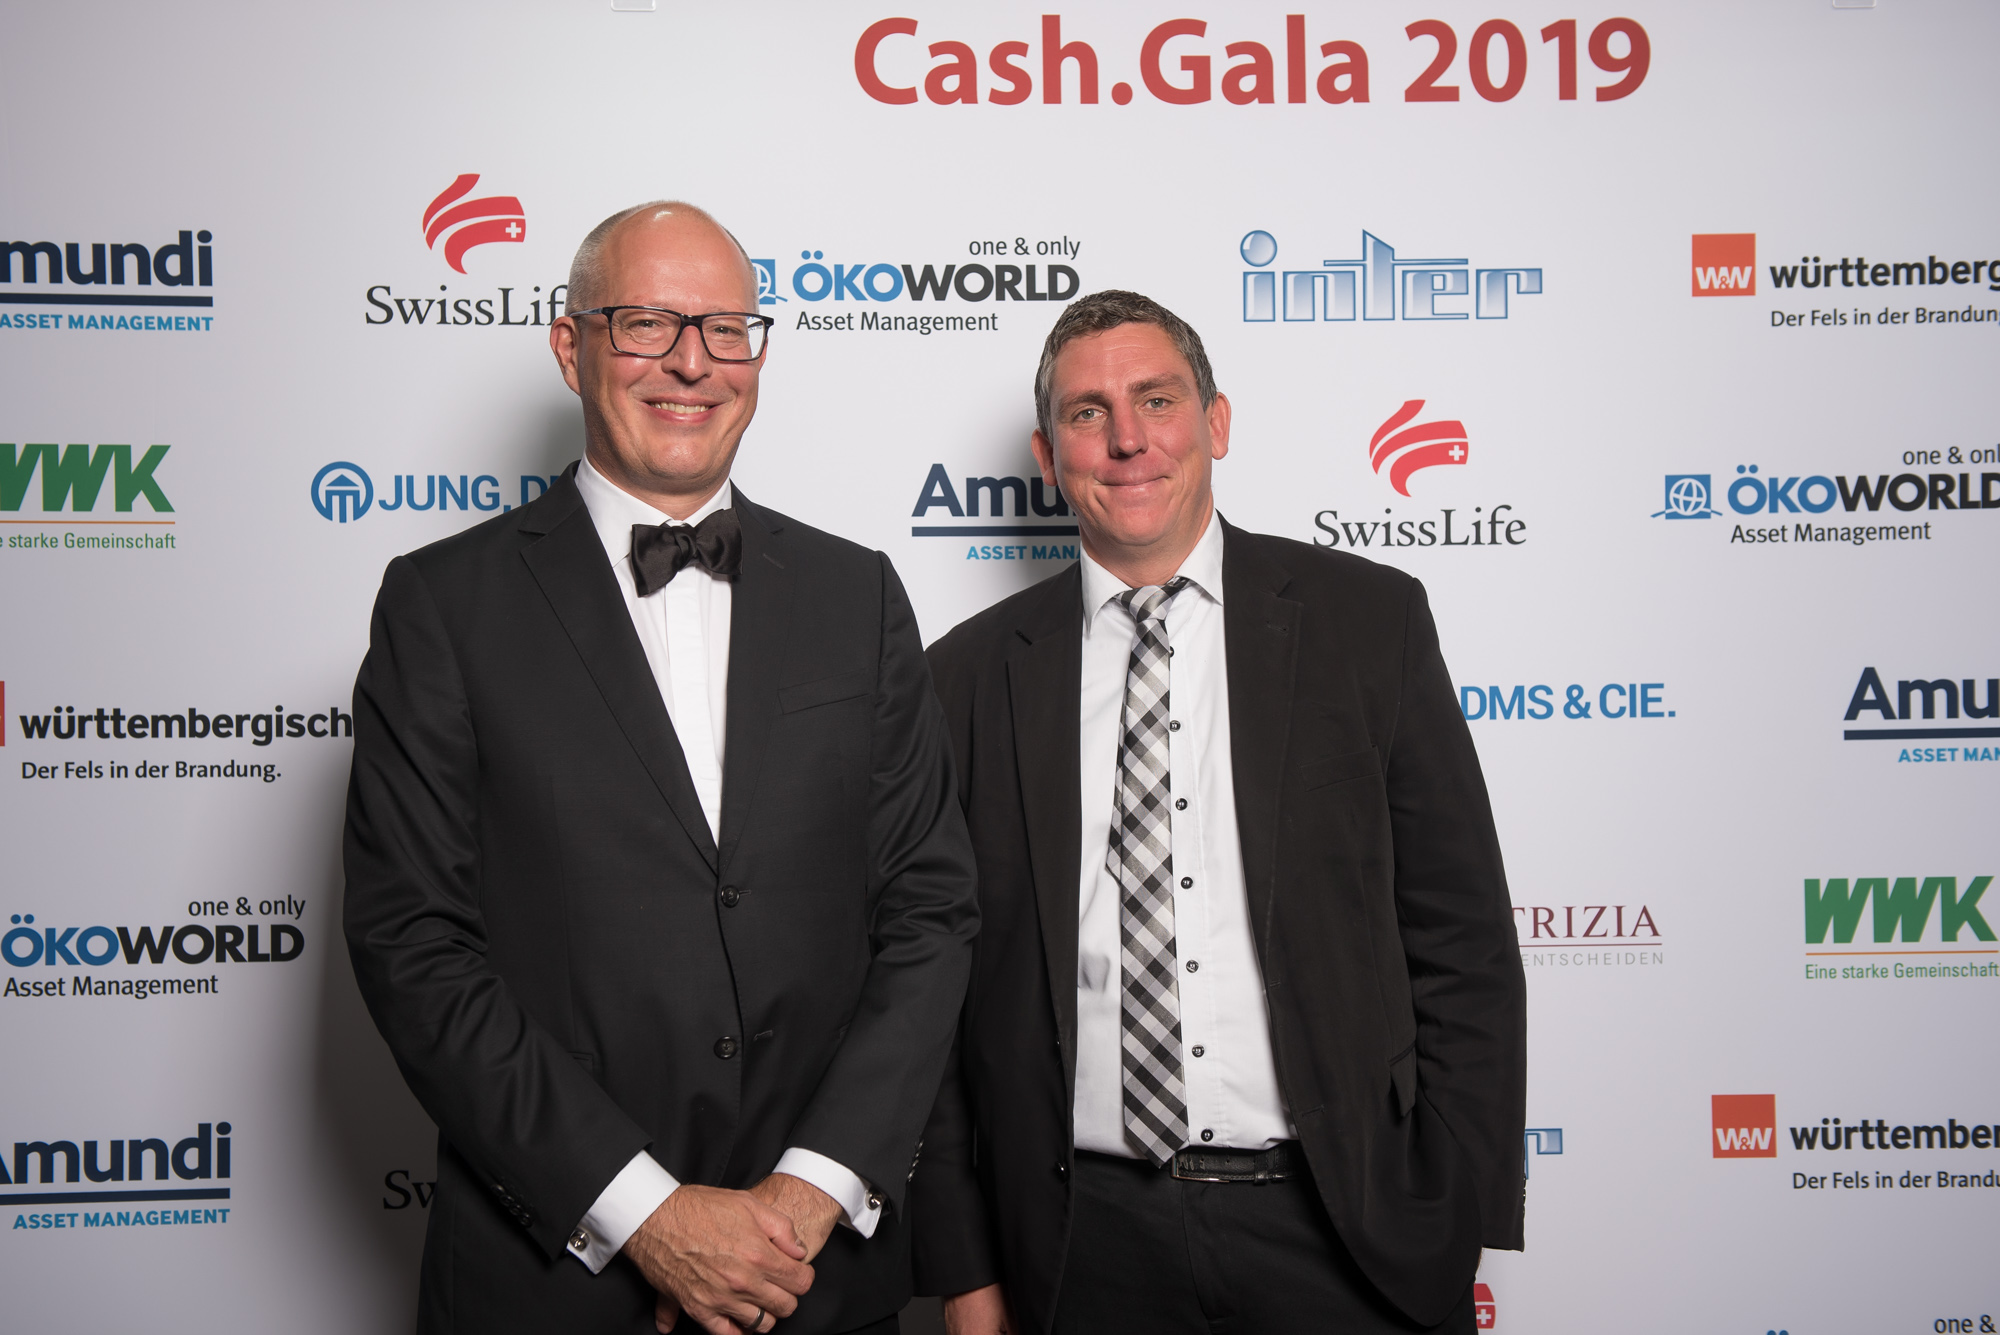 CashGala 2019 0020 AM DSC6999 in Cash.Gala 2019